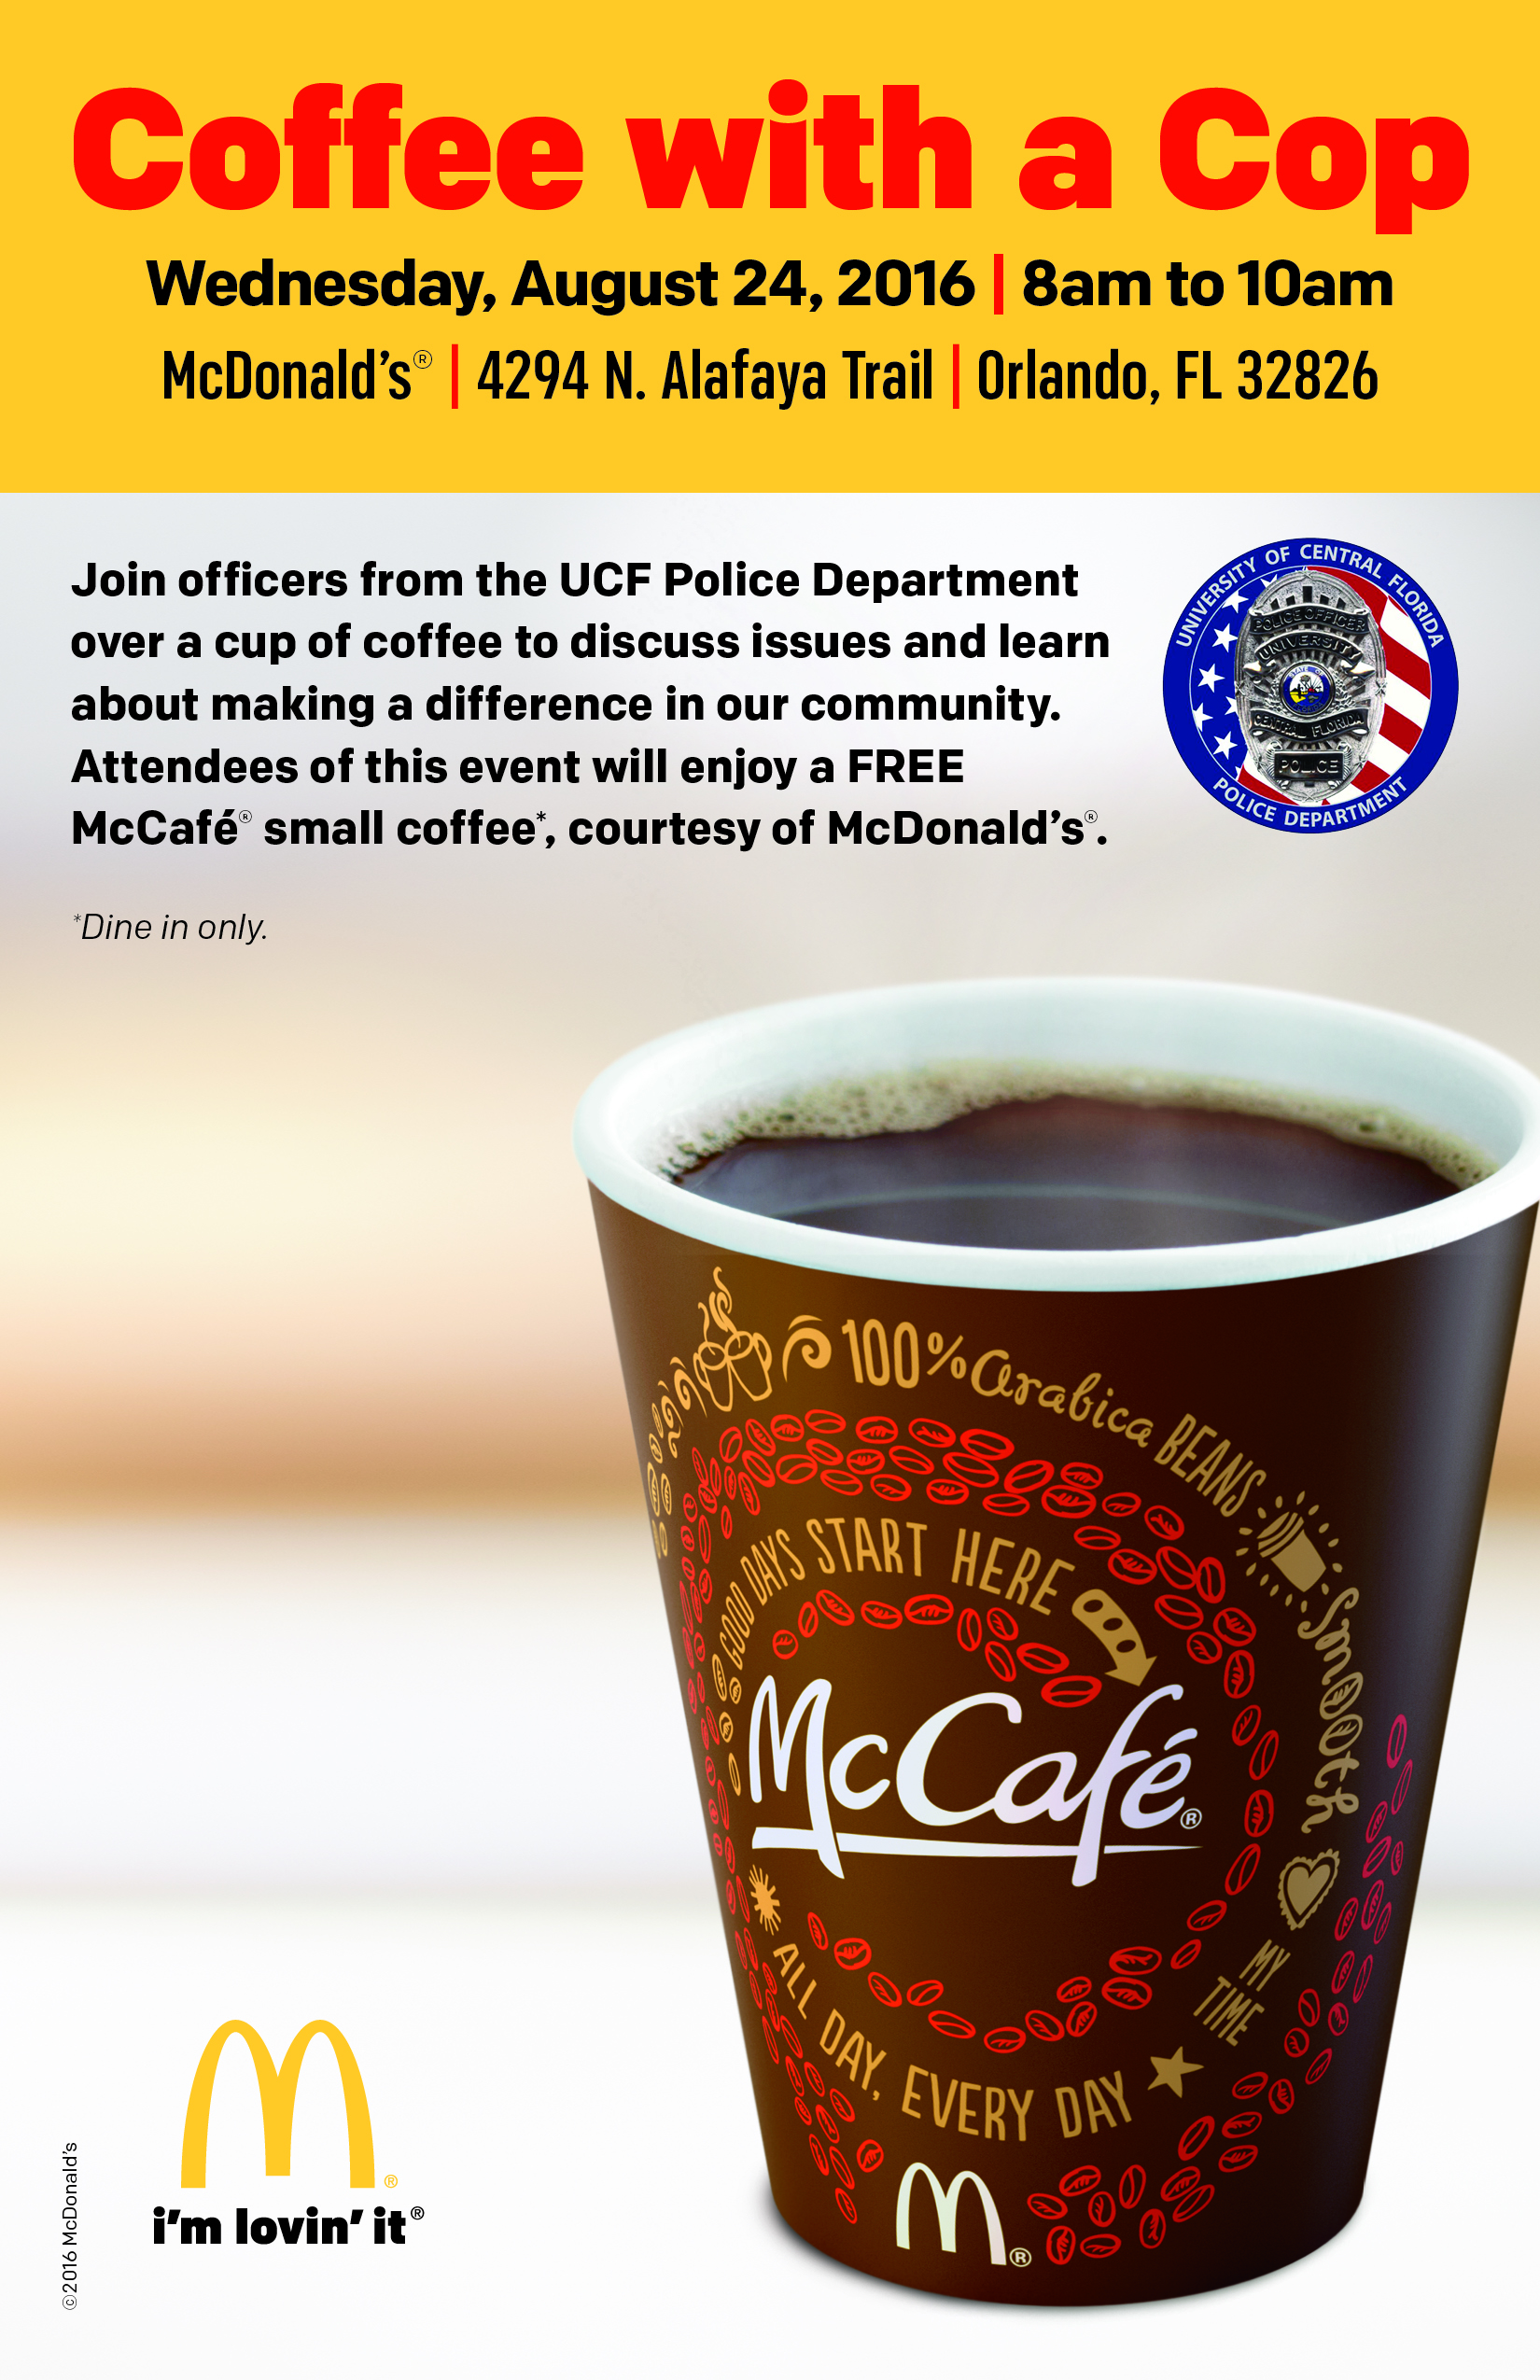 ucfpd  mcdonald u2019s partner for coffee with a cop